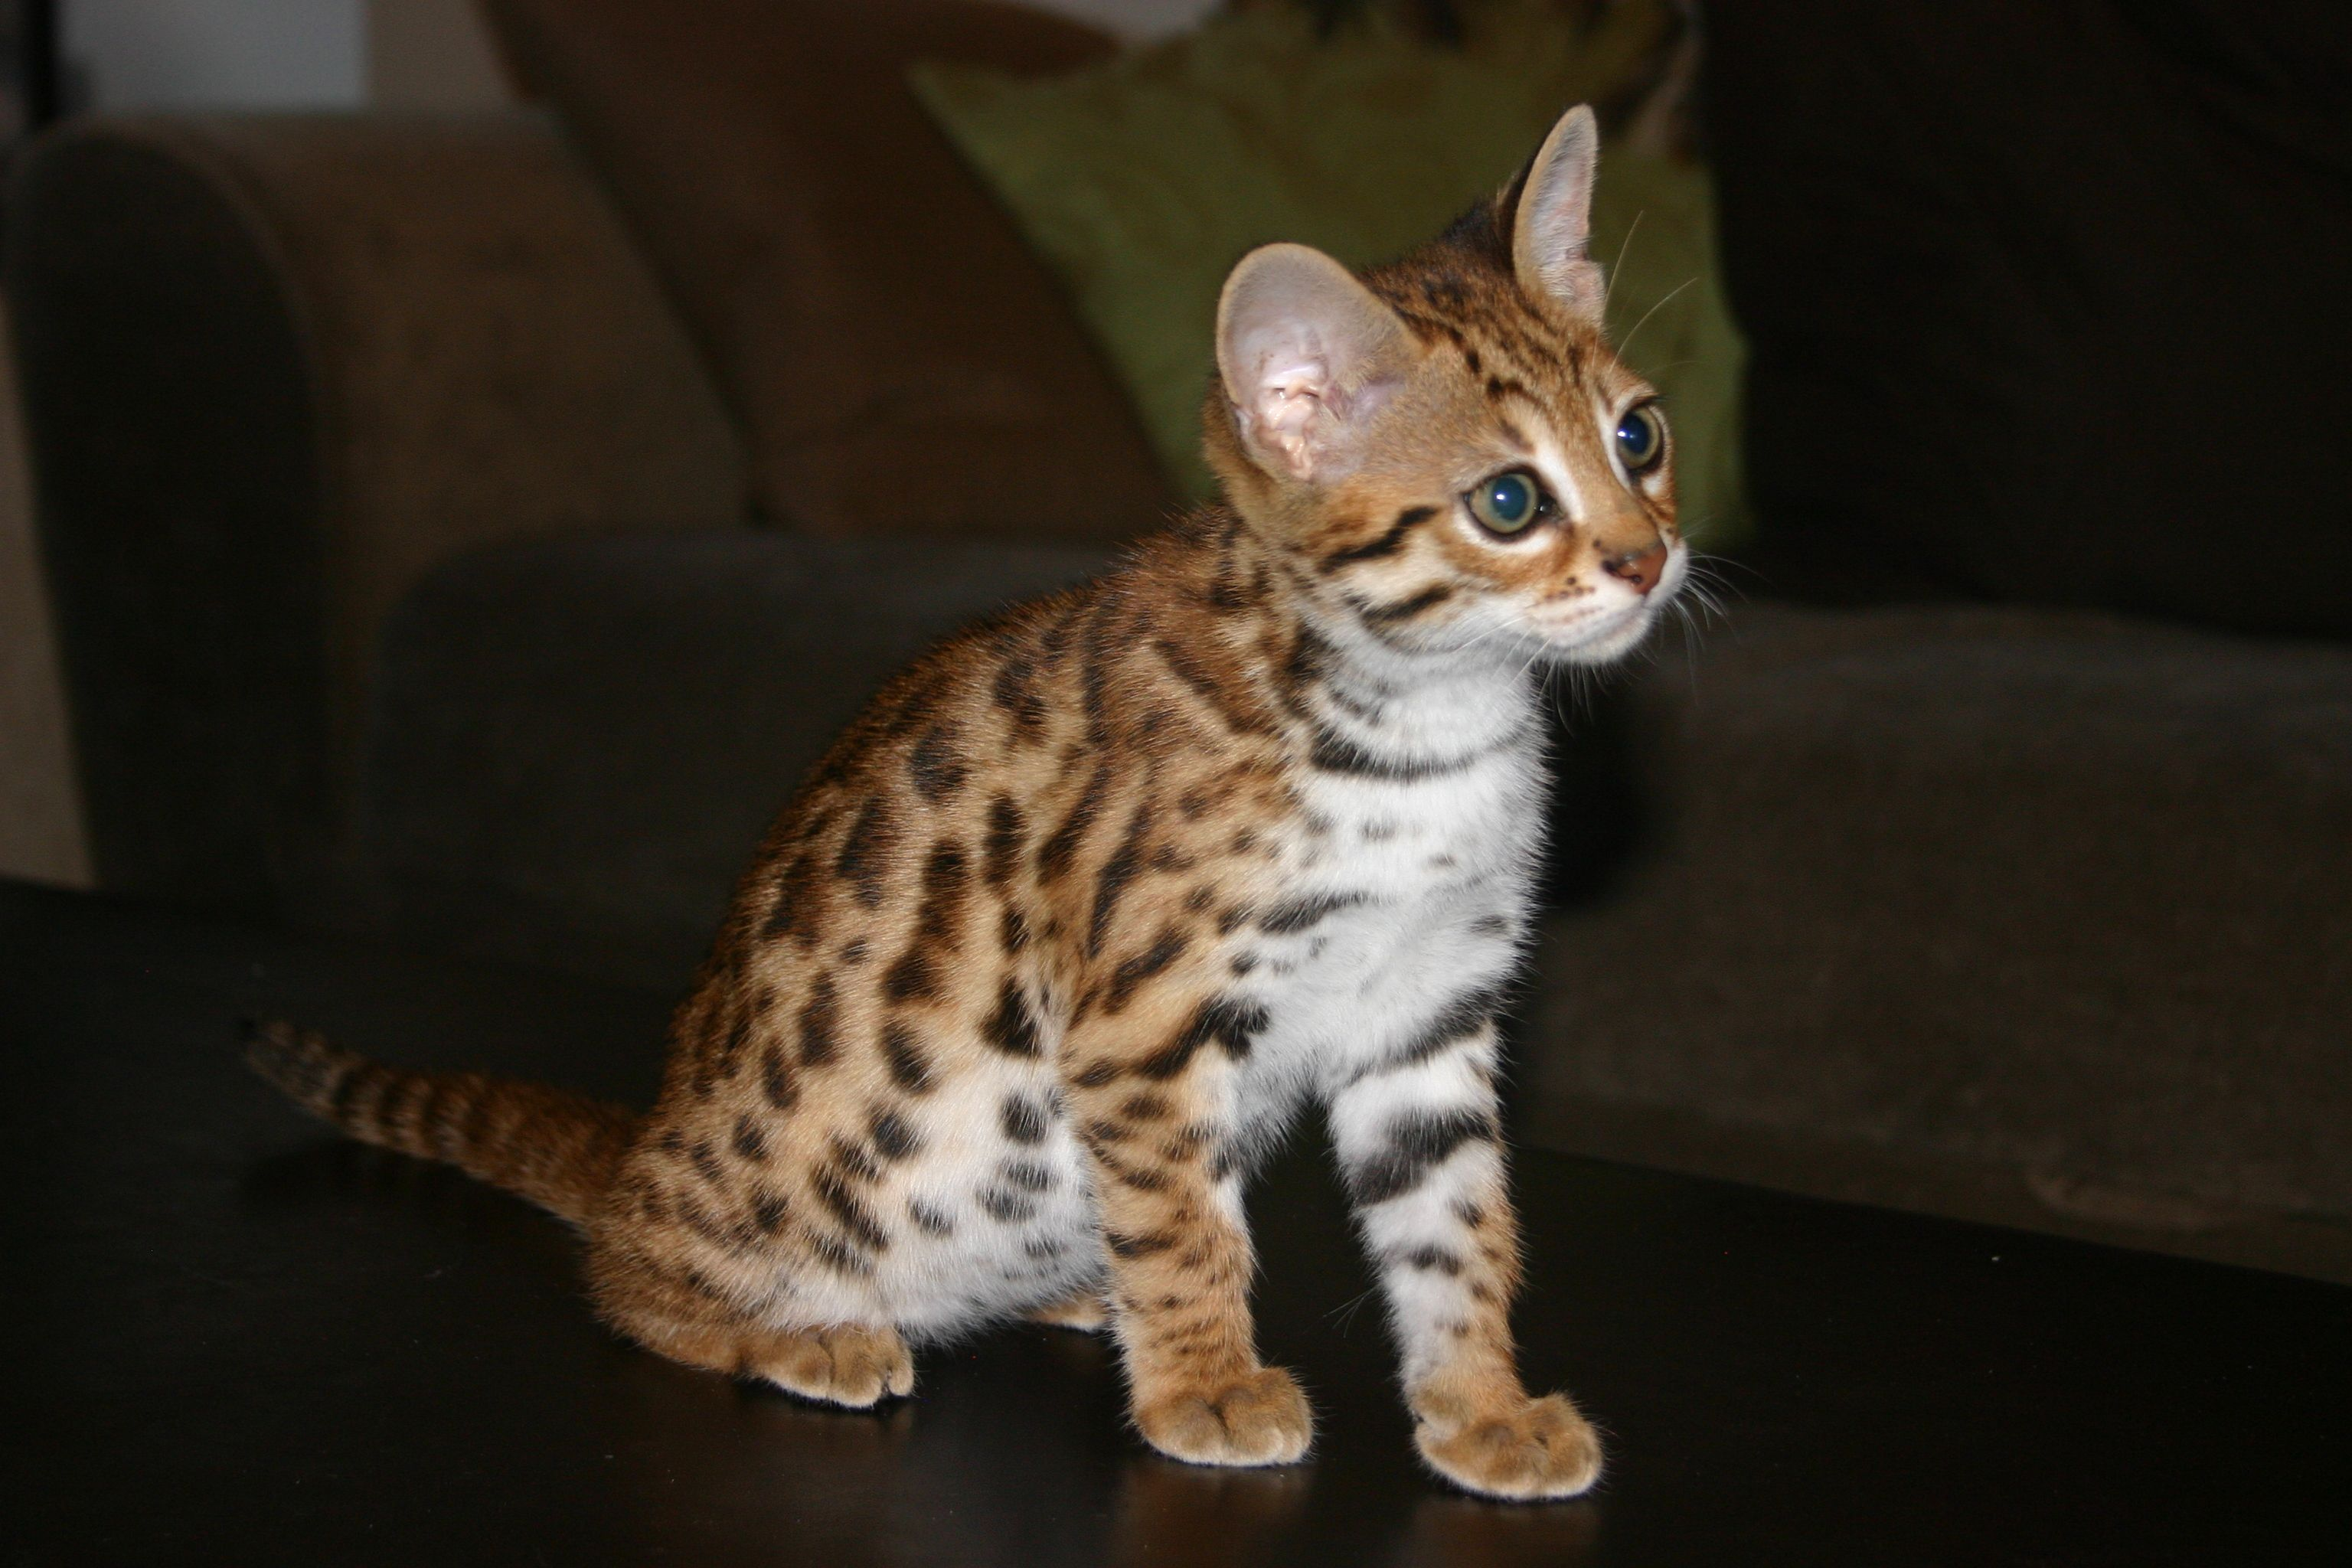 This is Sicily, an F1 Bengal (first generation from the Asian ...